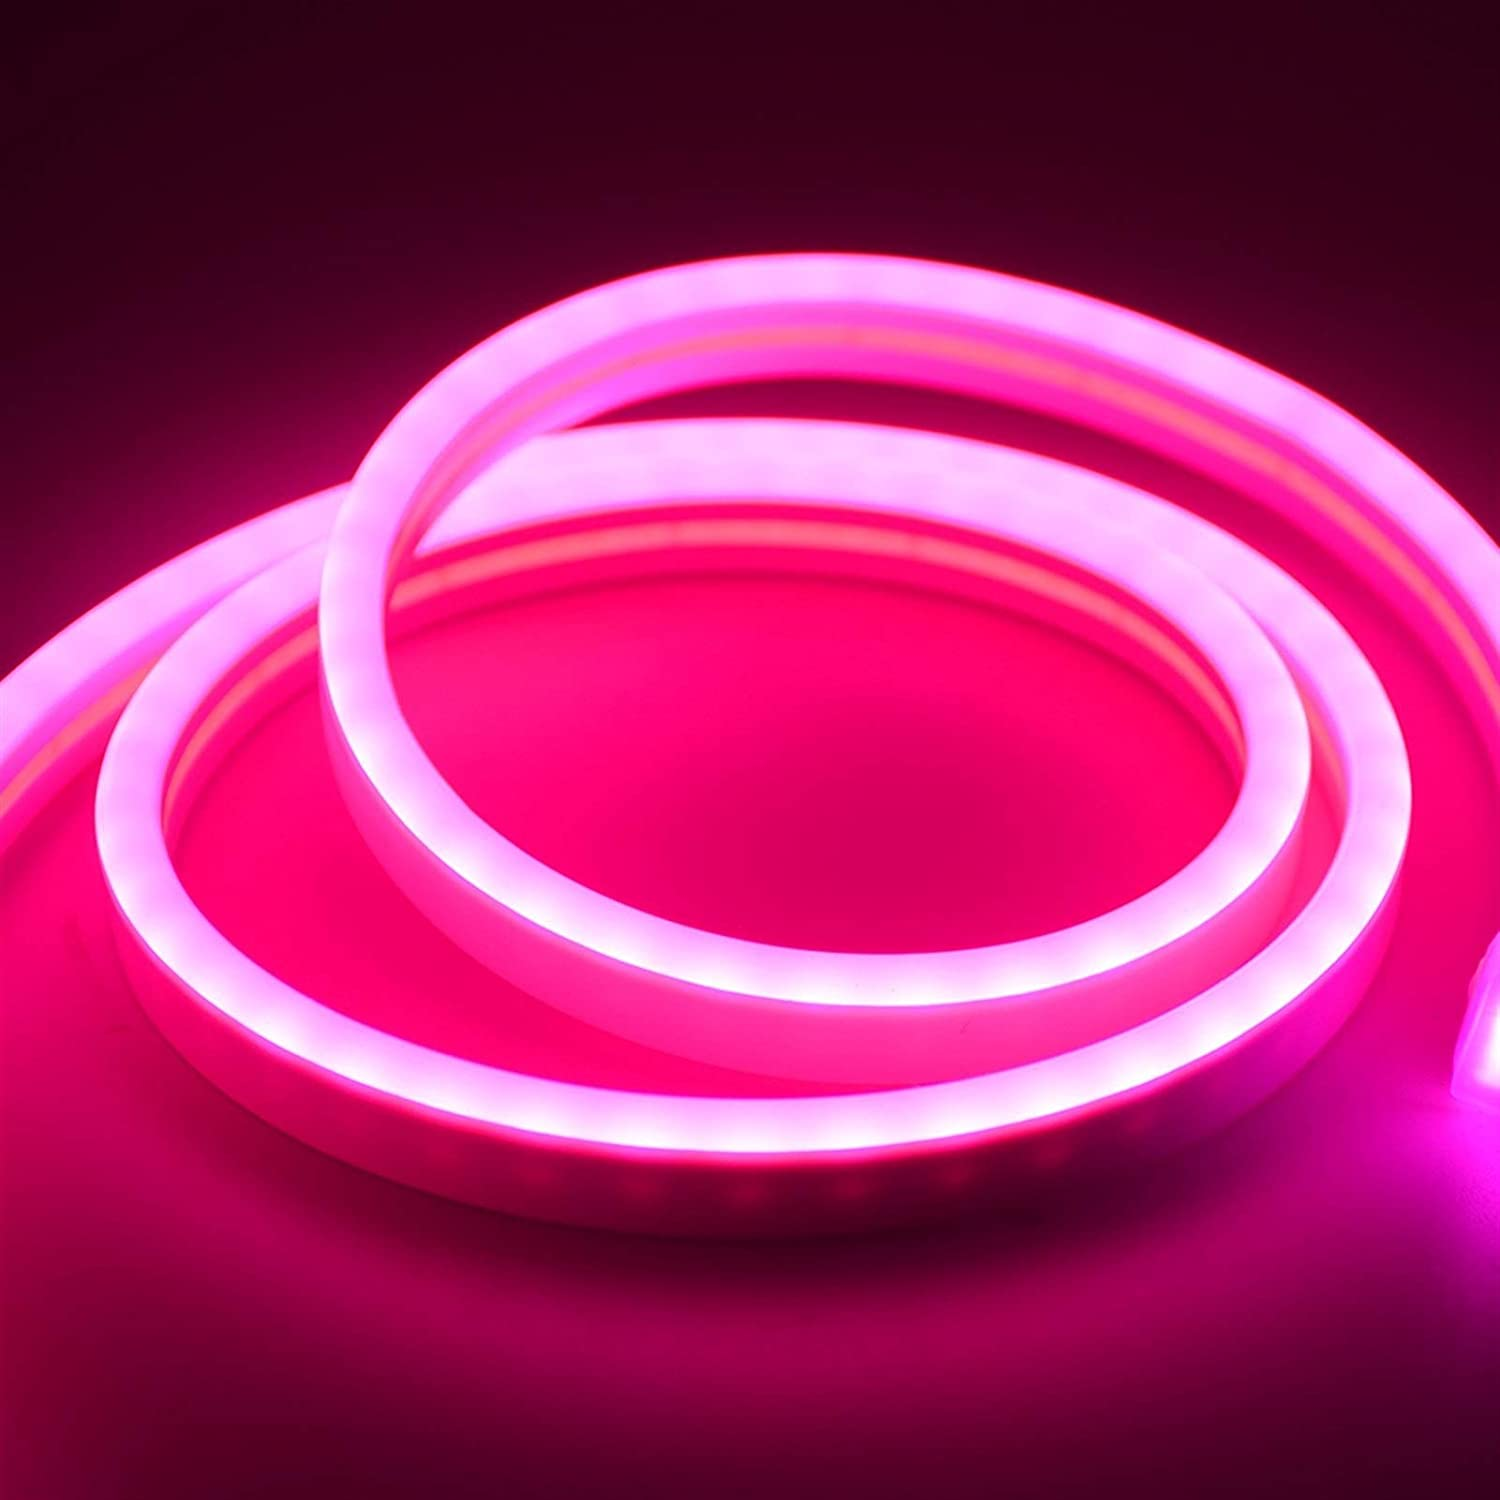 H A LED Strip Max 59% OFF Daily bargain sale lamp neon SMD2835 120LDS Light Waterproof M 110V